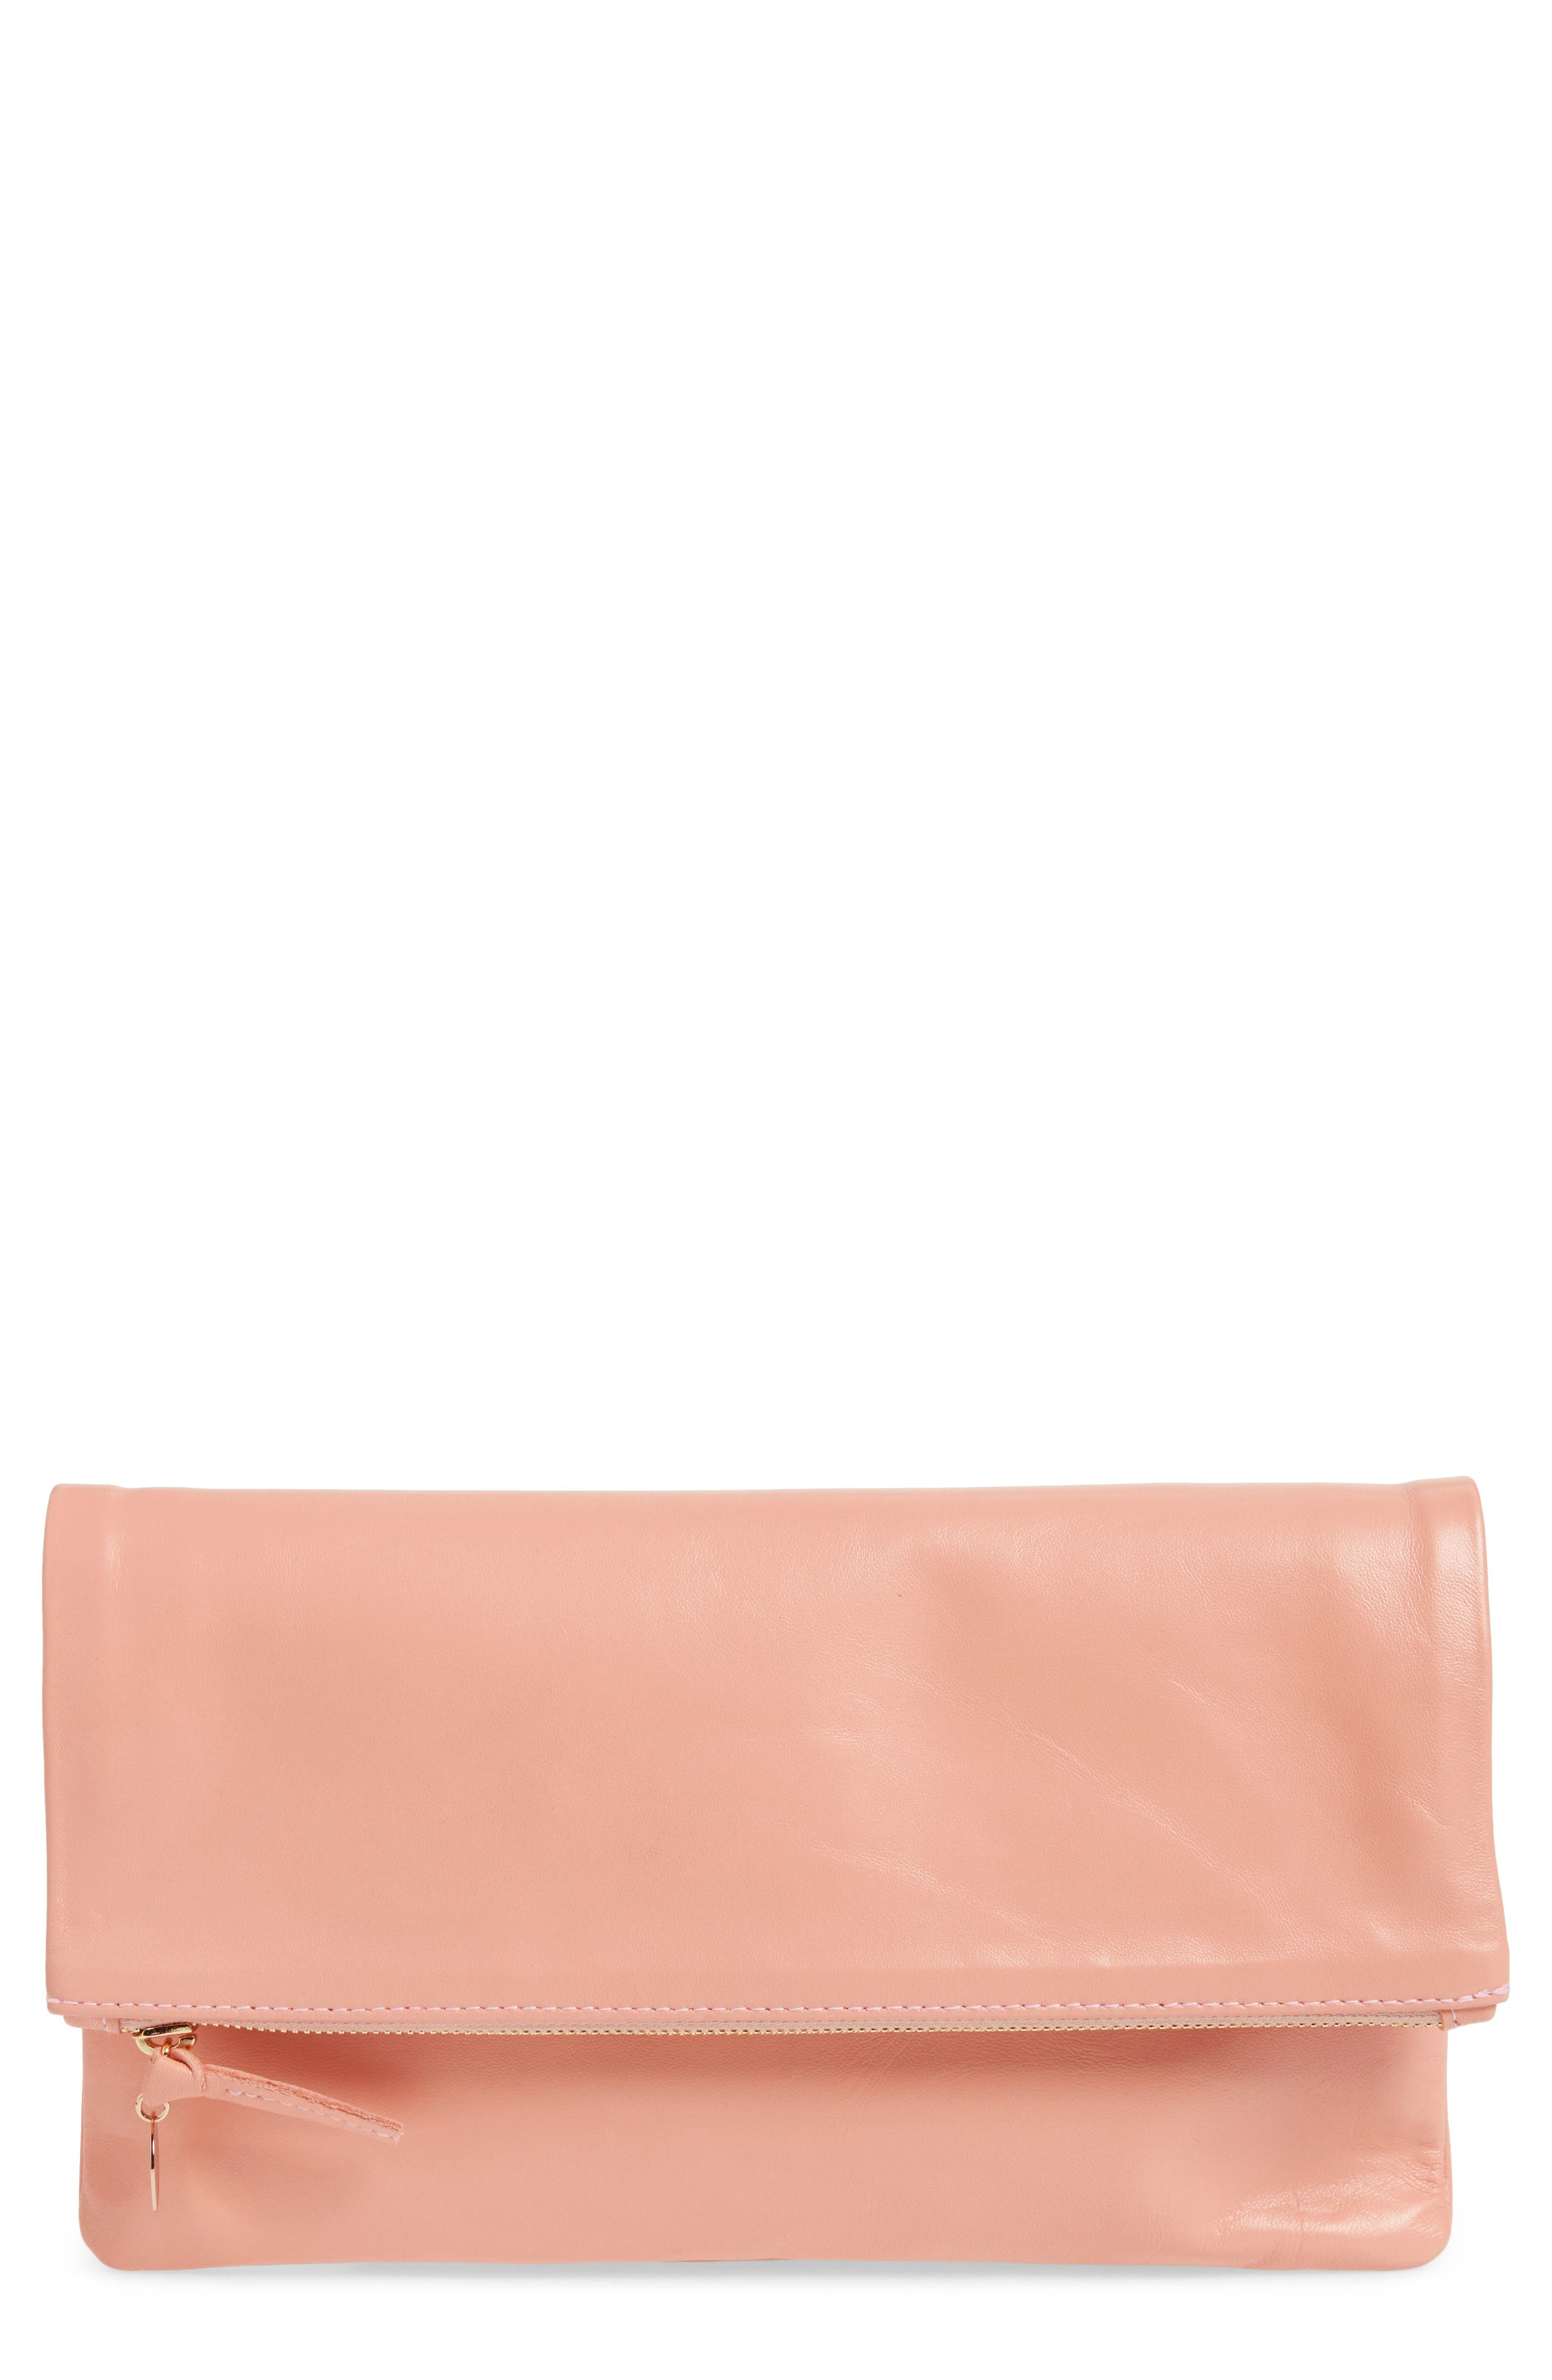 Leather Foldover Clutch, Main, color, 650